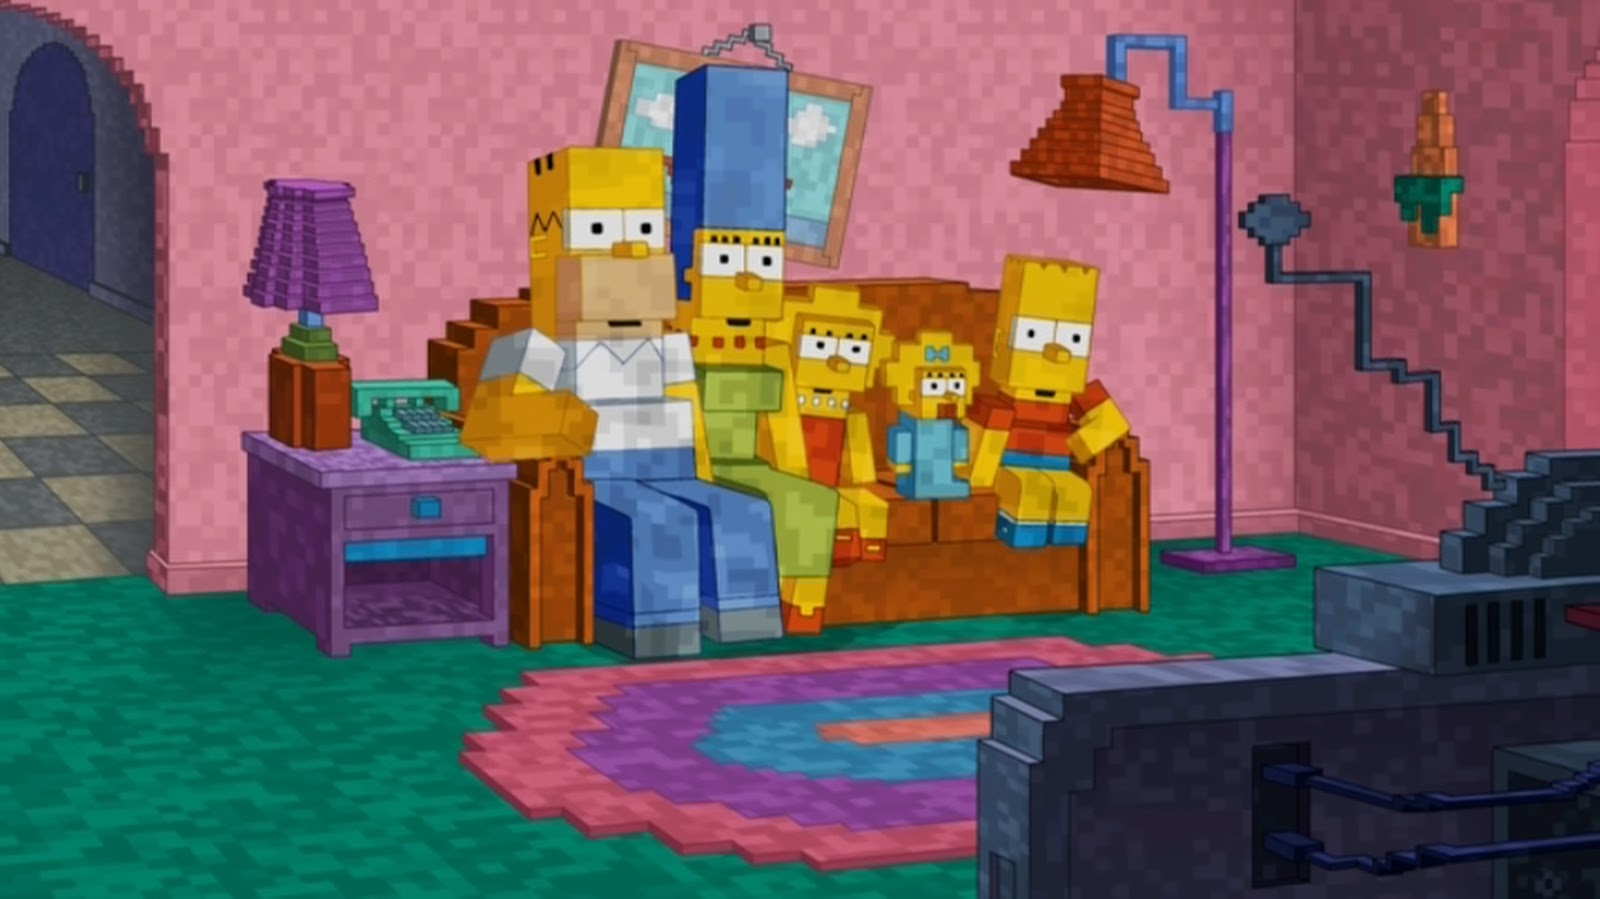 Simpsons Minecraft Couch Gag on Best Anniversary Ts Parents